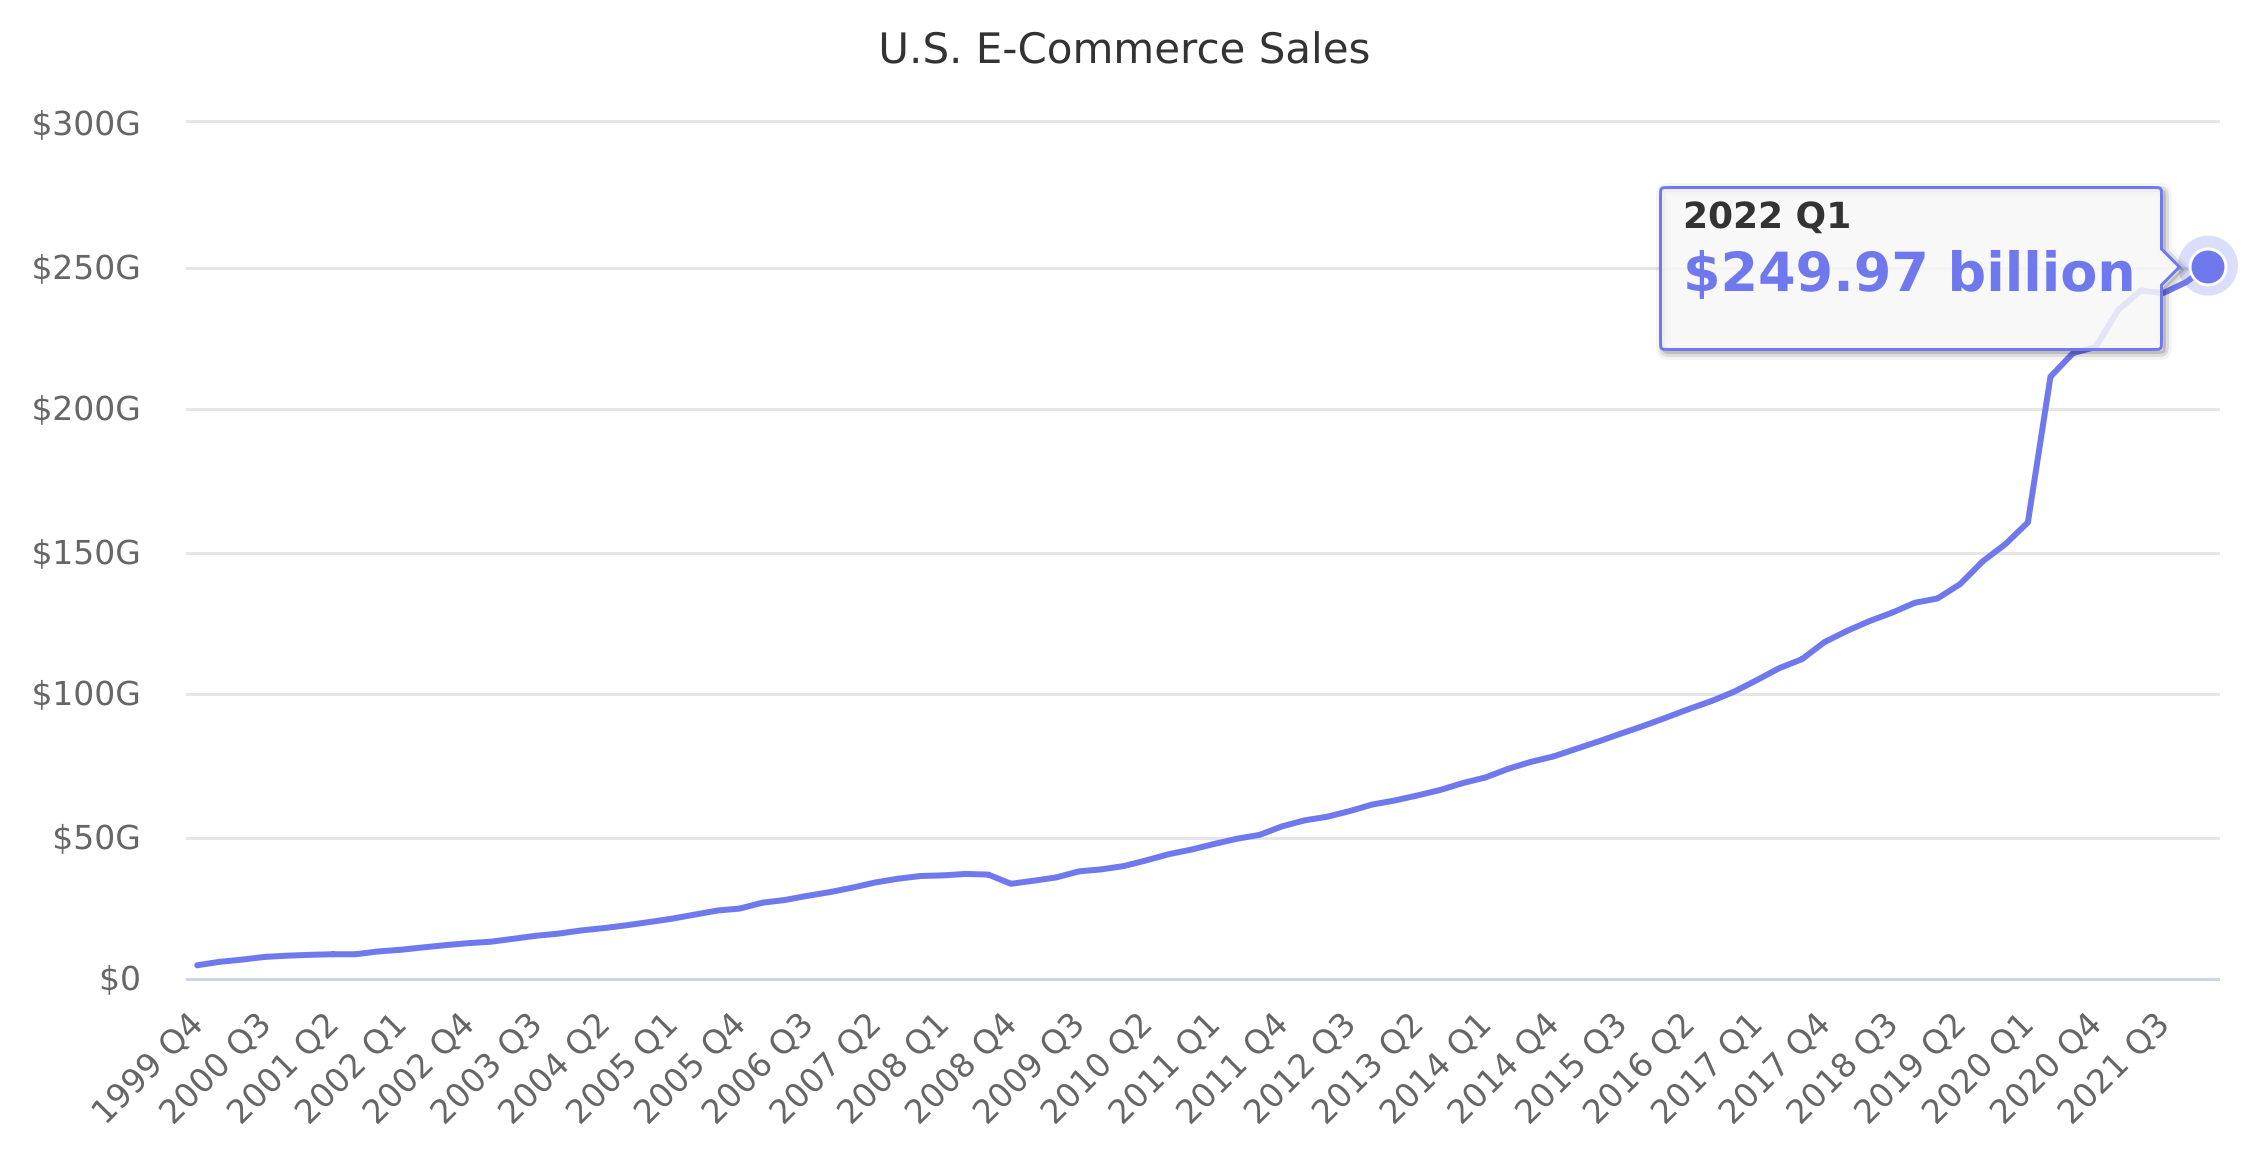 U.S. E-Commerce Sales 1999-2018